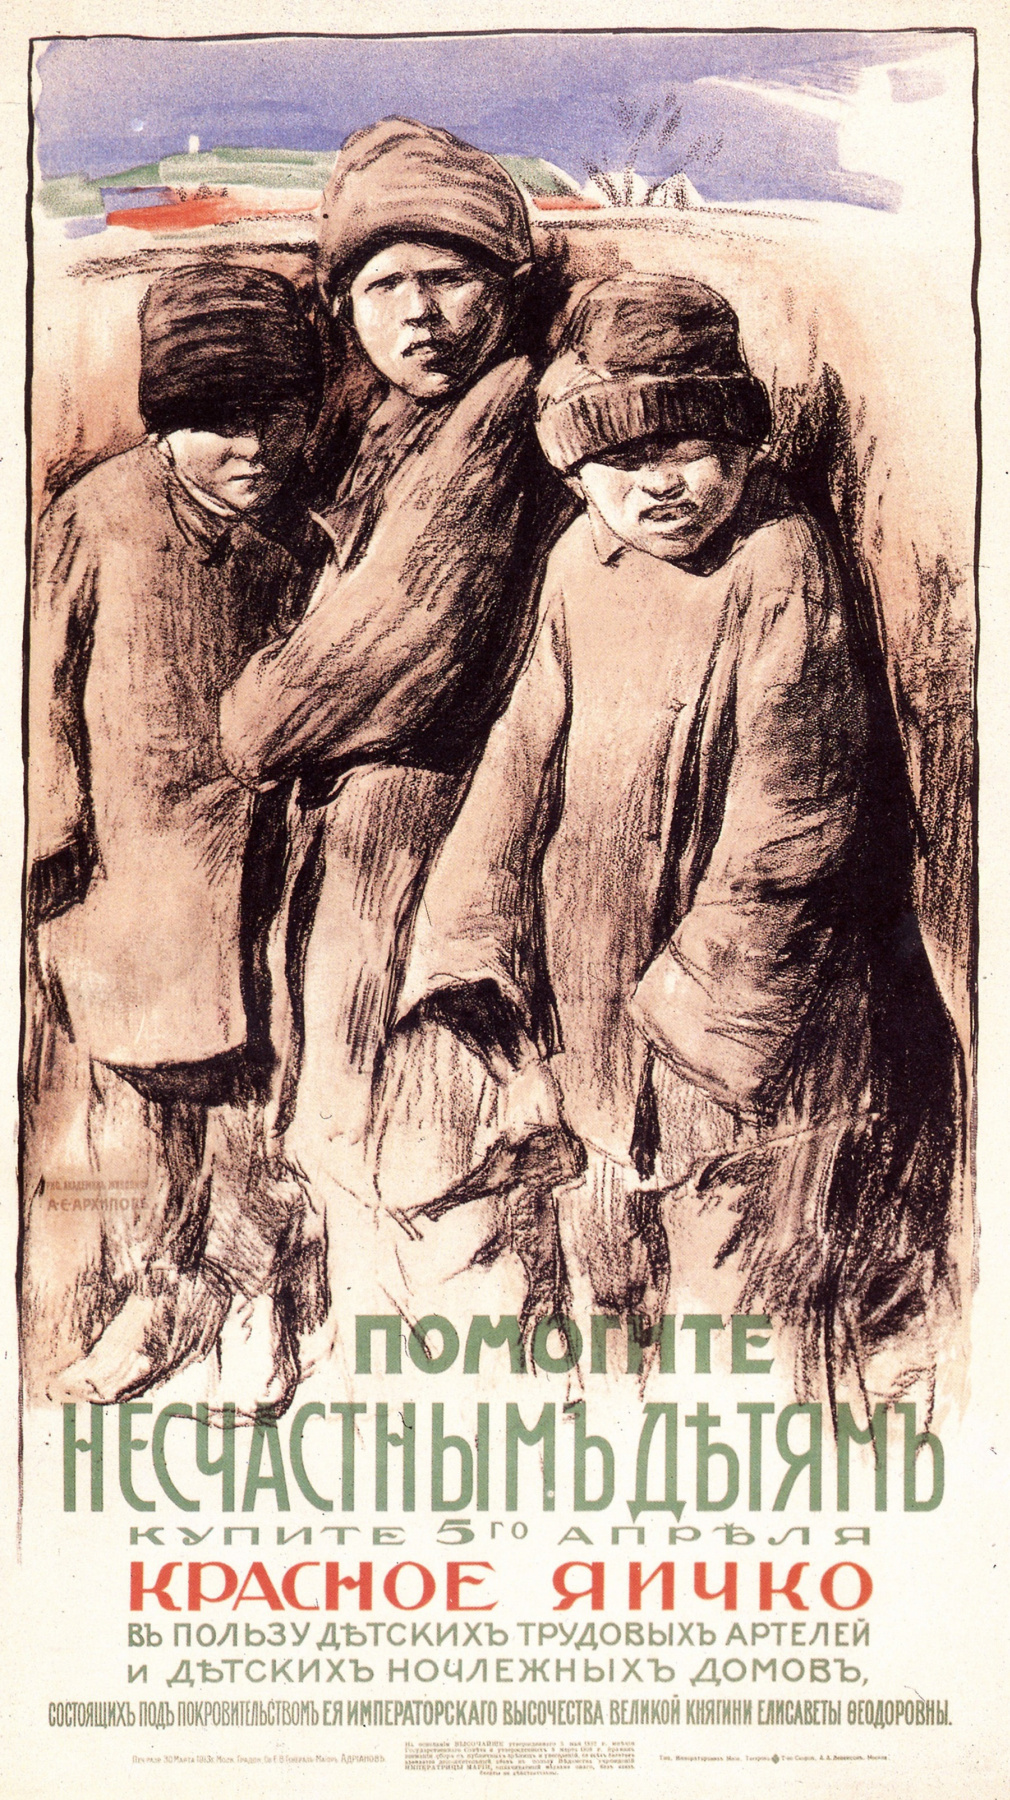 Abram Arkhipov. Help unhappy children. Buy on April 5th the Red Egg for the benefit of the children's labor artels and night shelters